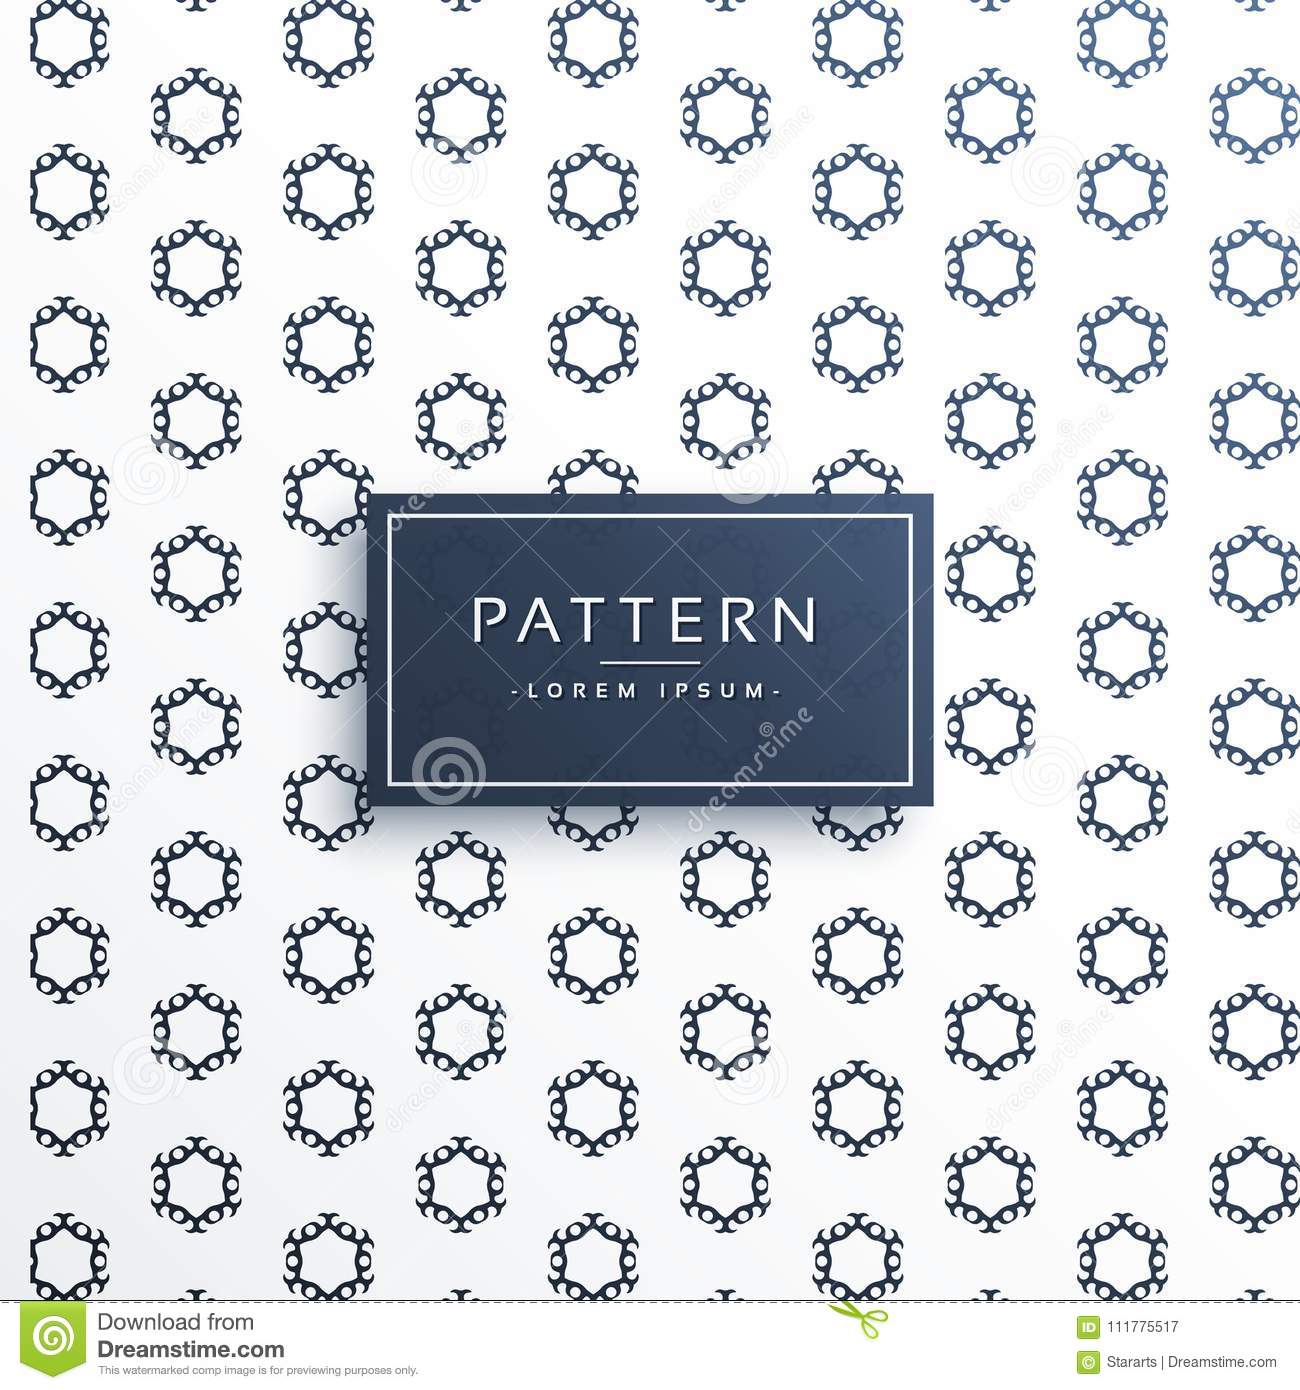 Hexagonal decorative pattern vector background